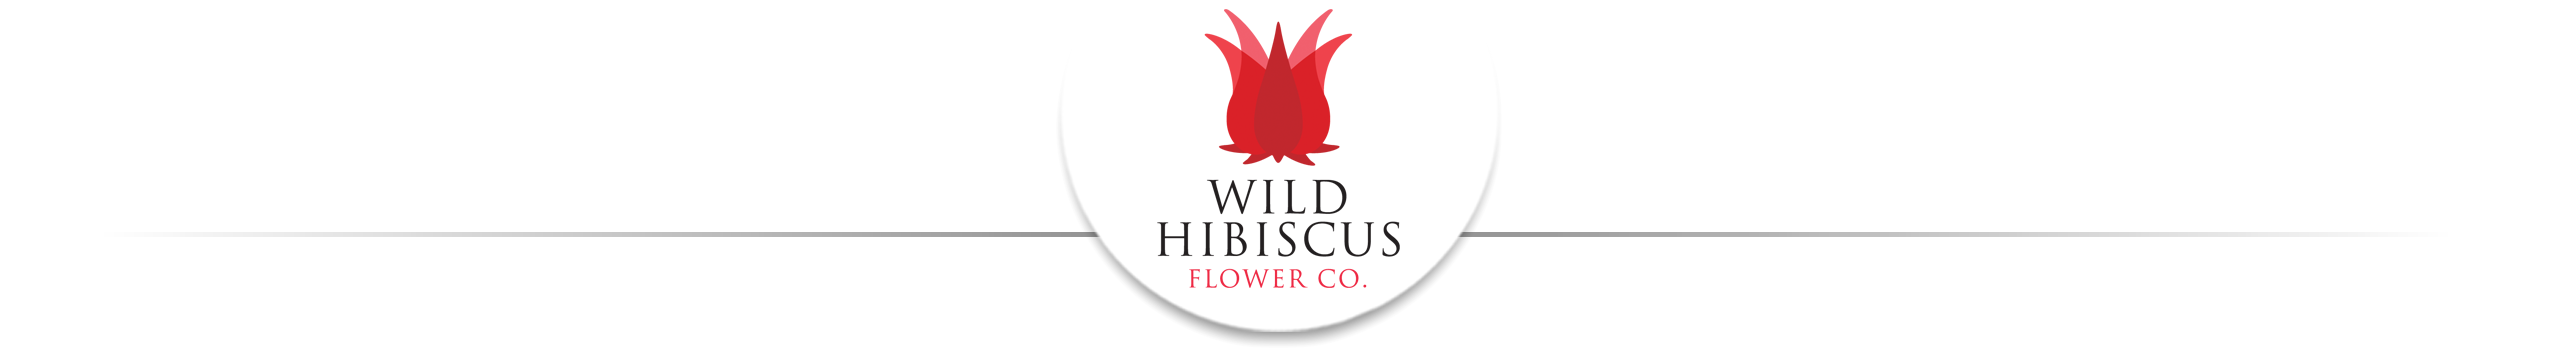 Where can i buy wild hibiscus flowers in syrup stock flower images where can i buy wild hibiscus flowers in syrup izmirmasajfo Choice Image